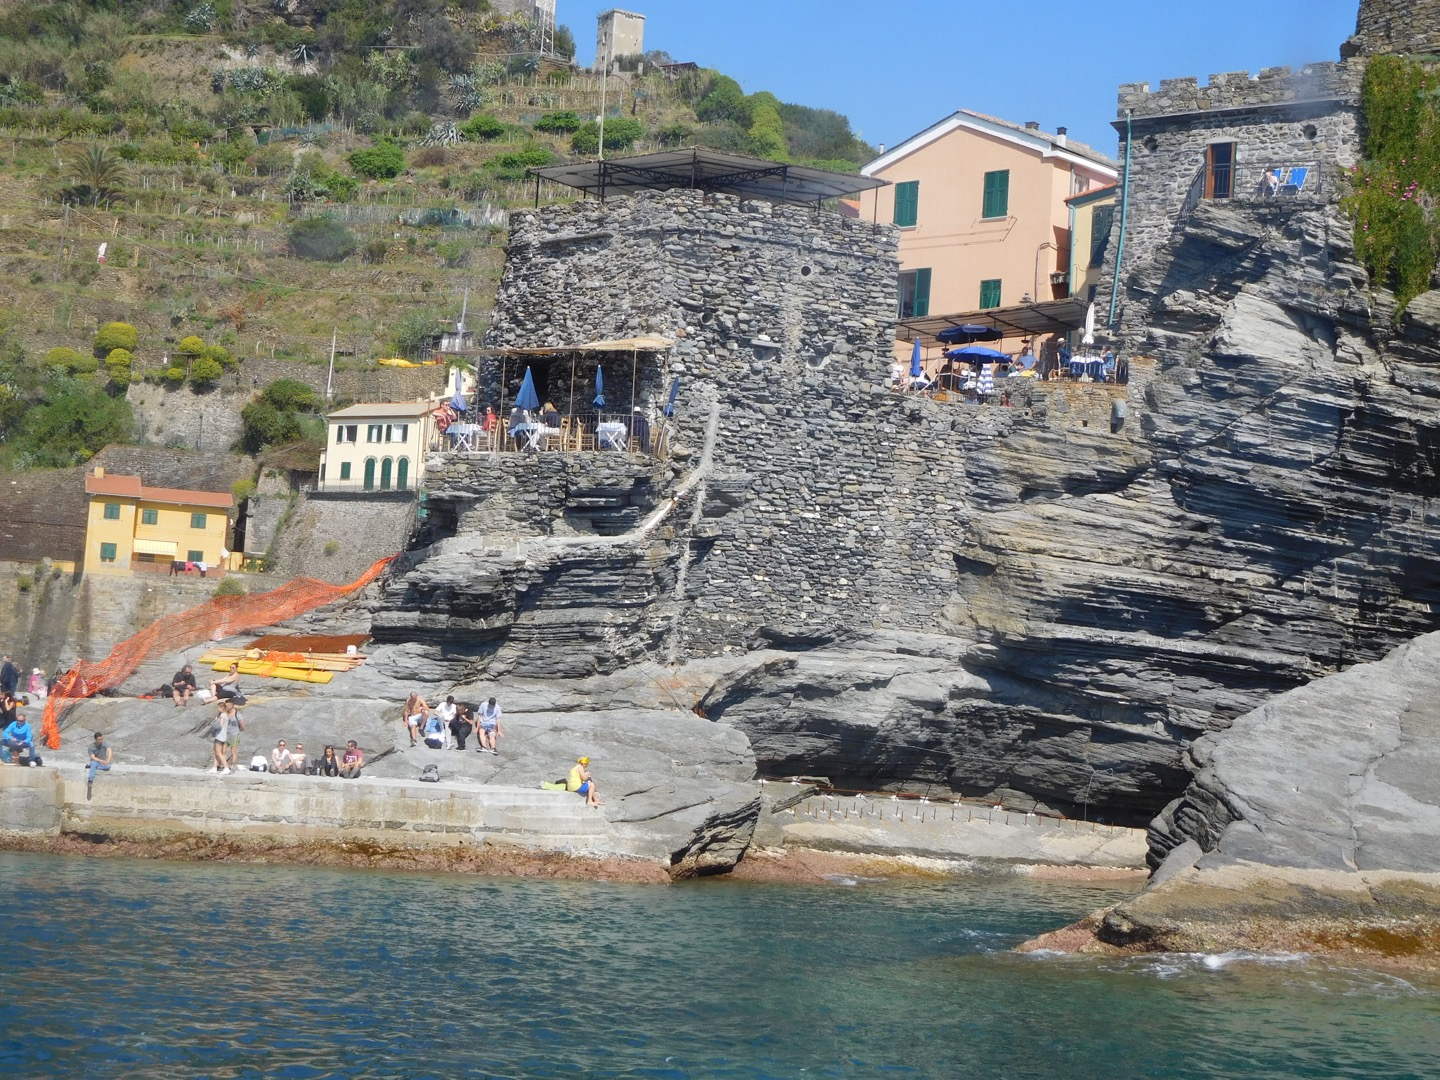 The sea approach to Vernazza and the remains of a defensive tower, now housing a restaurant.